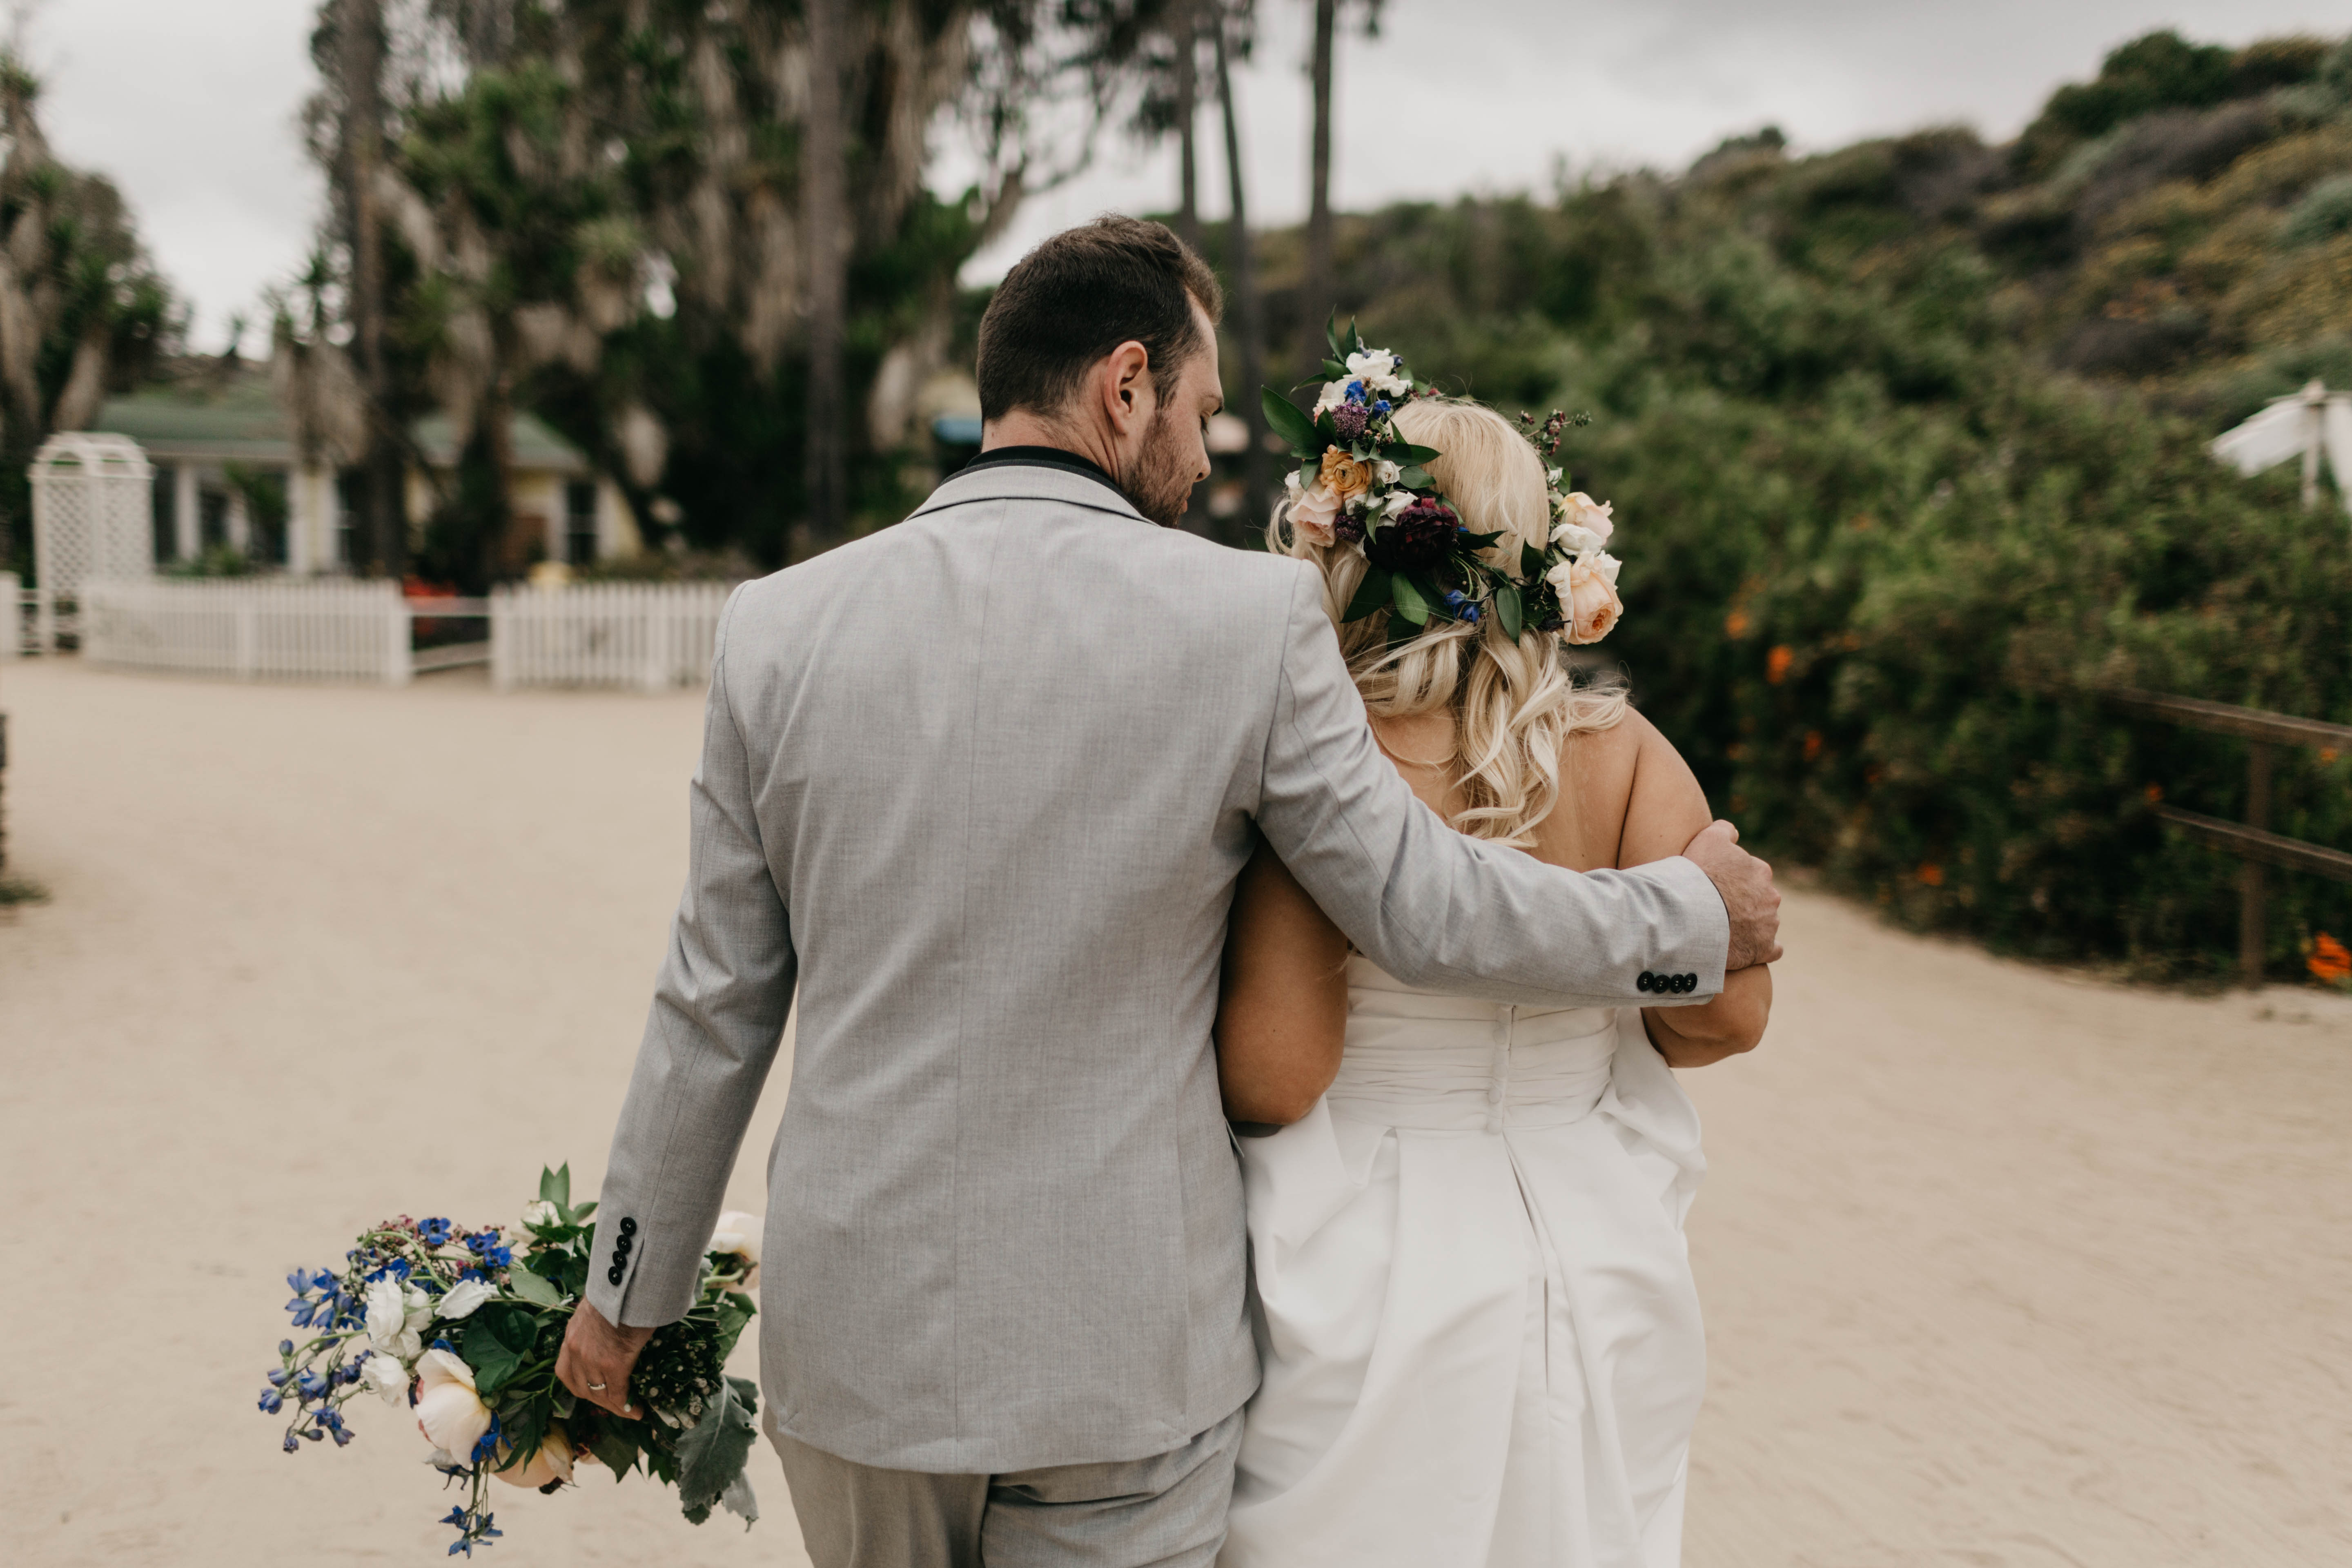 A colorful greenhouse wedding at the five crowns in Corona Del Mar and Crystal cove, California